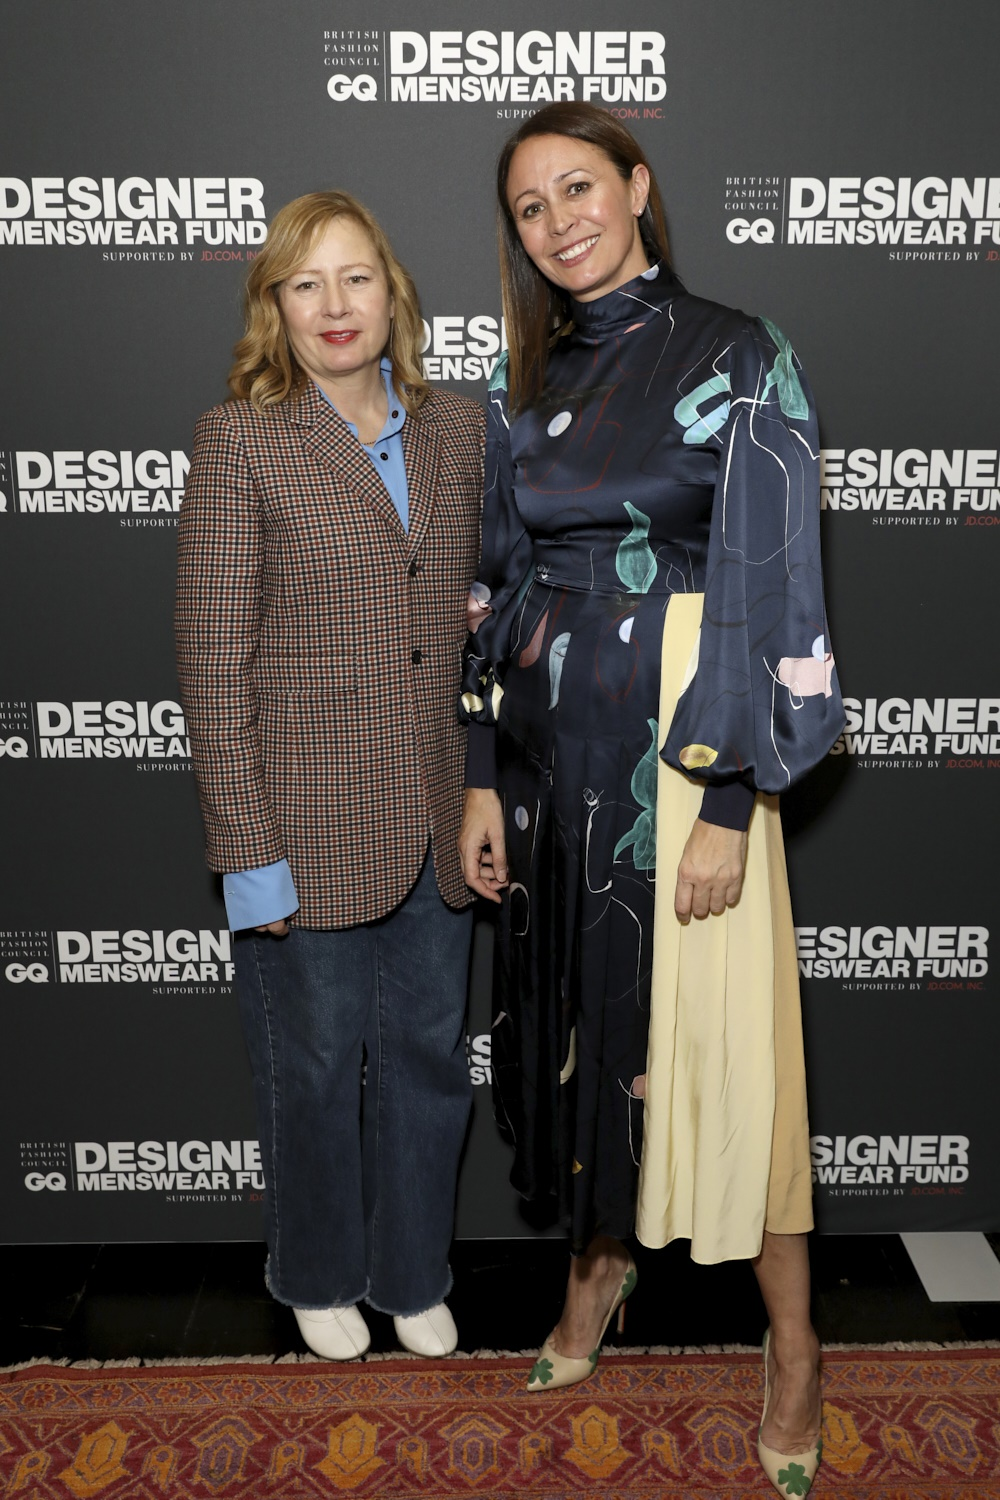 Sarah Mower, Caroline Rush at the BFC/CG Designer Menswear Fundsupported by JD.com